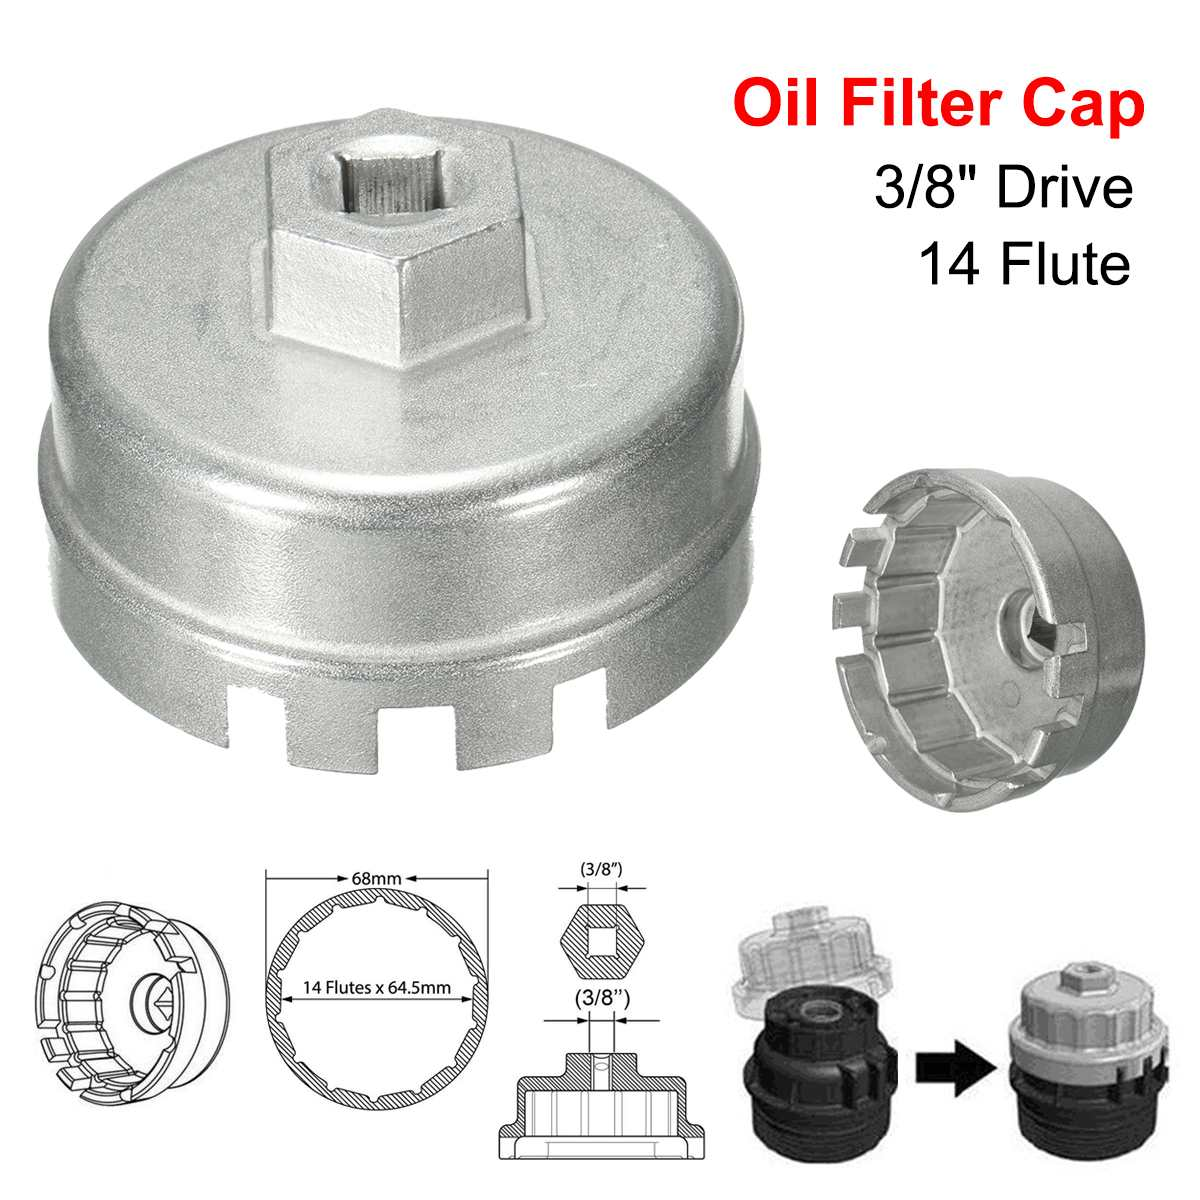 Car Oil Filter Housing Cap Assembly For Toyota Prius Lexus CT200h 2008-2016